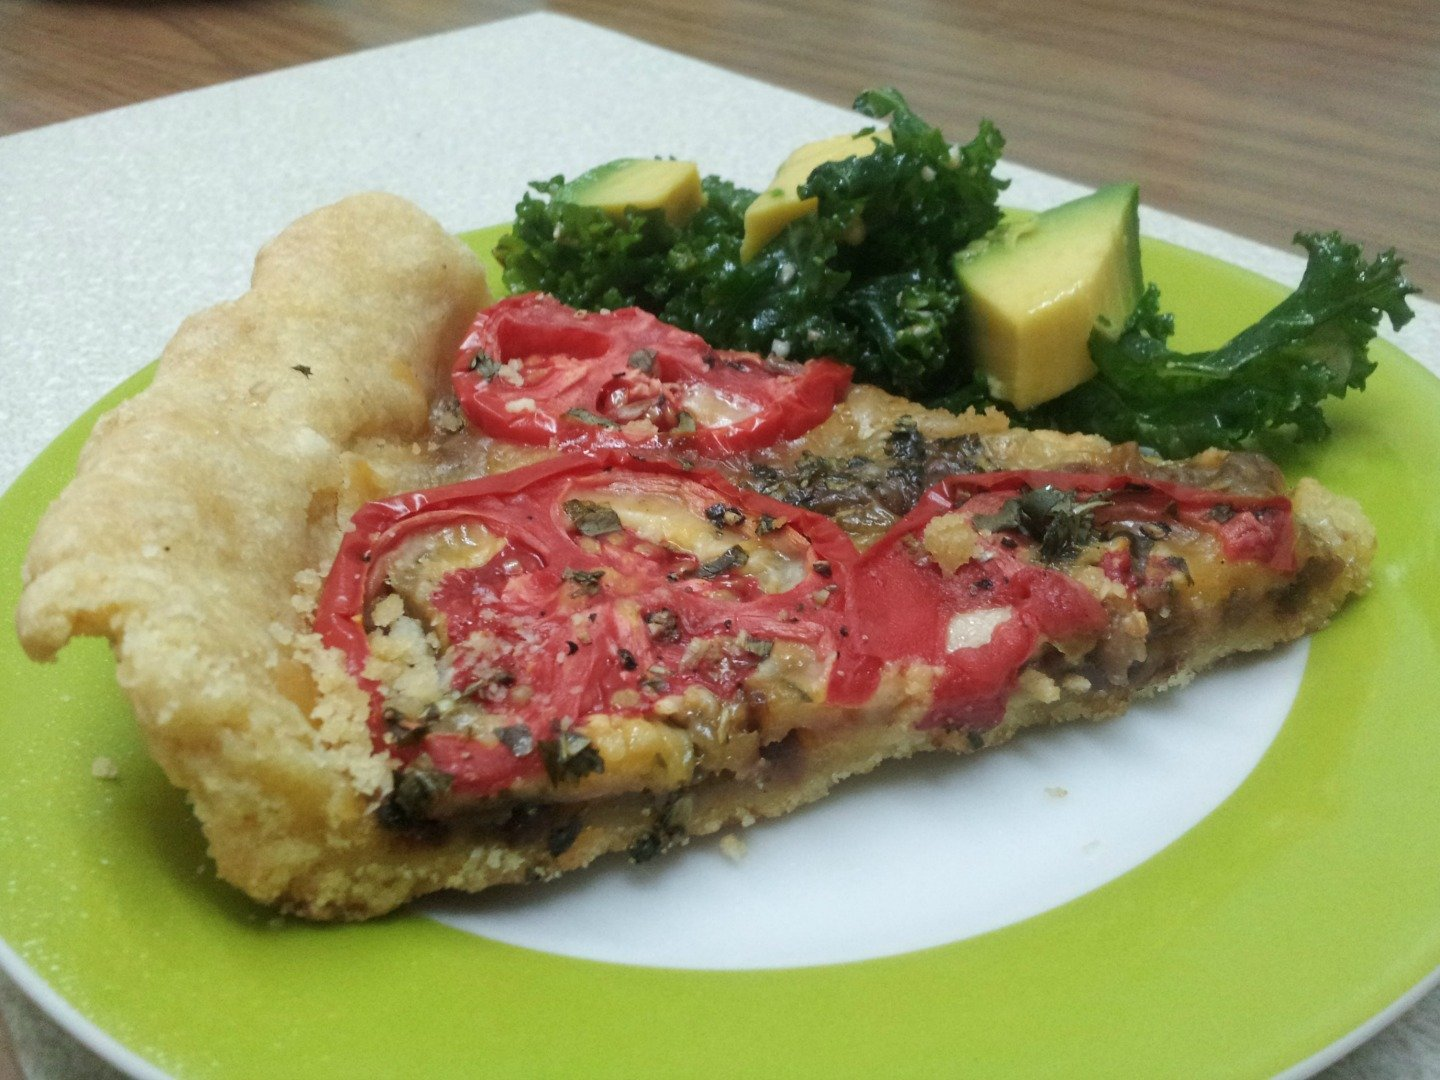 #MeatlessMonday Meal: Flavours of Mexico Tart